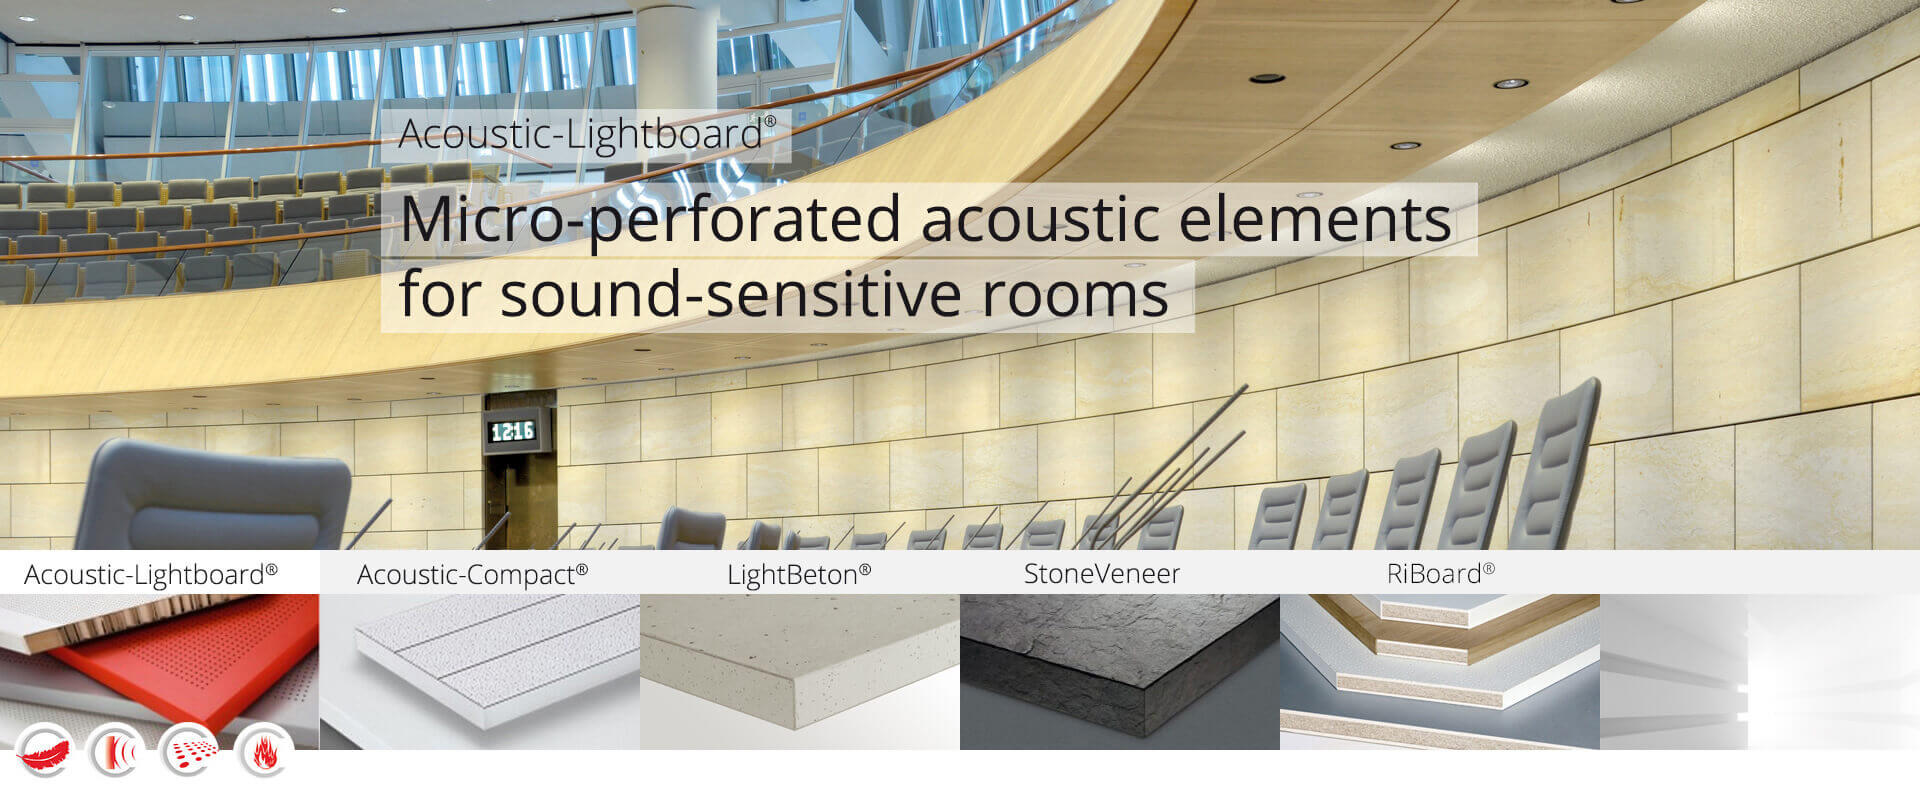 Akustik Design Richter Akustik Design Fire Protection Acoustics And Design